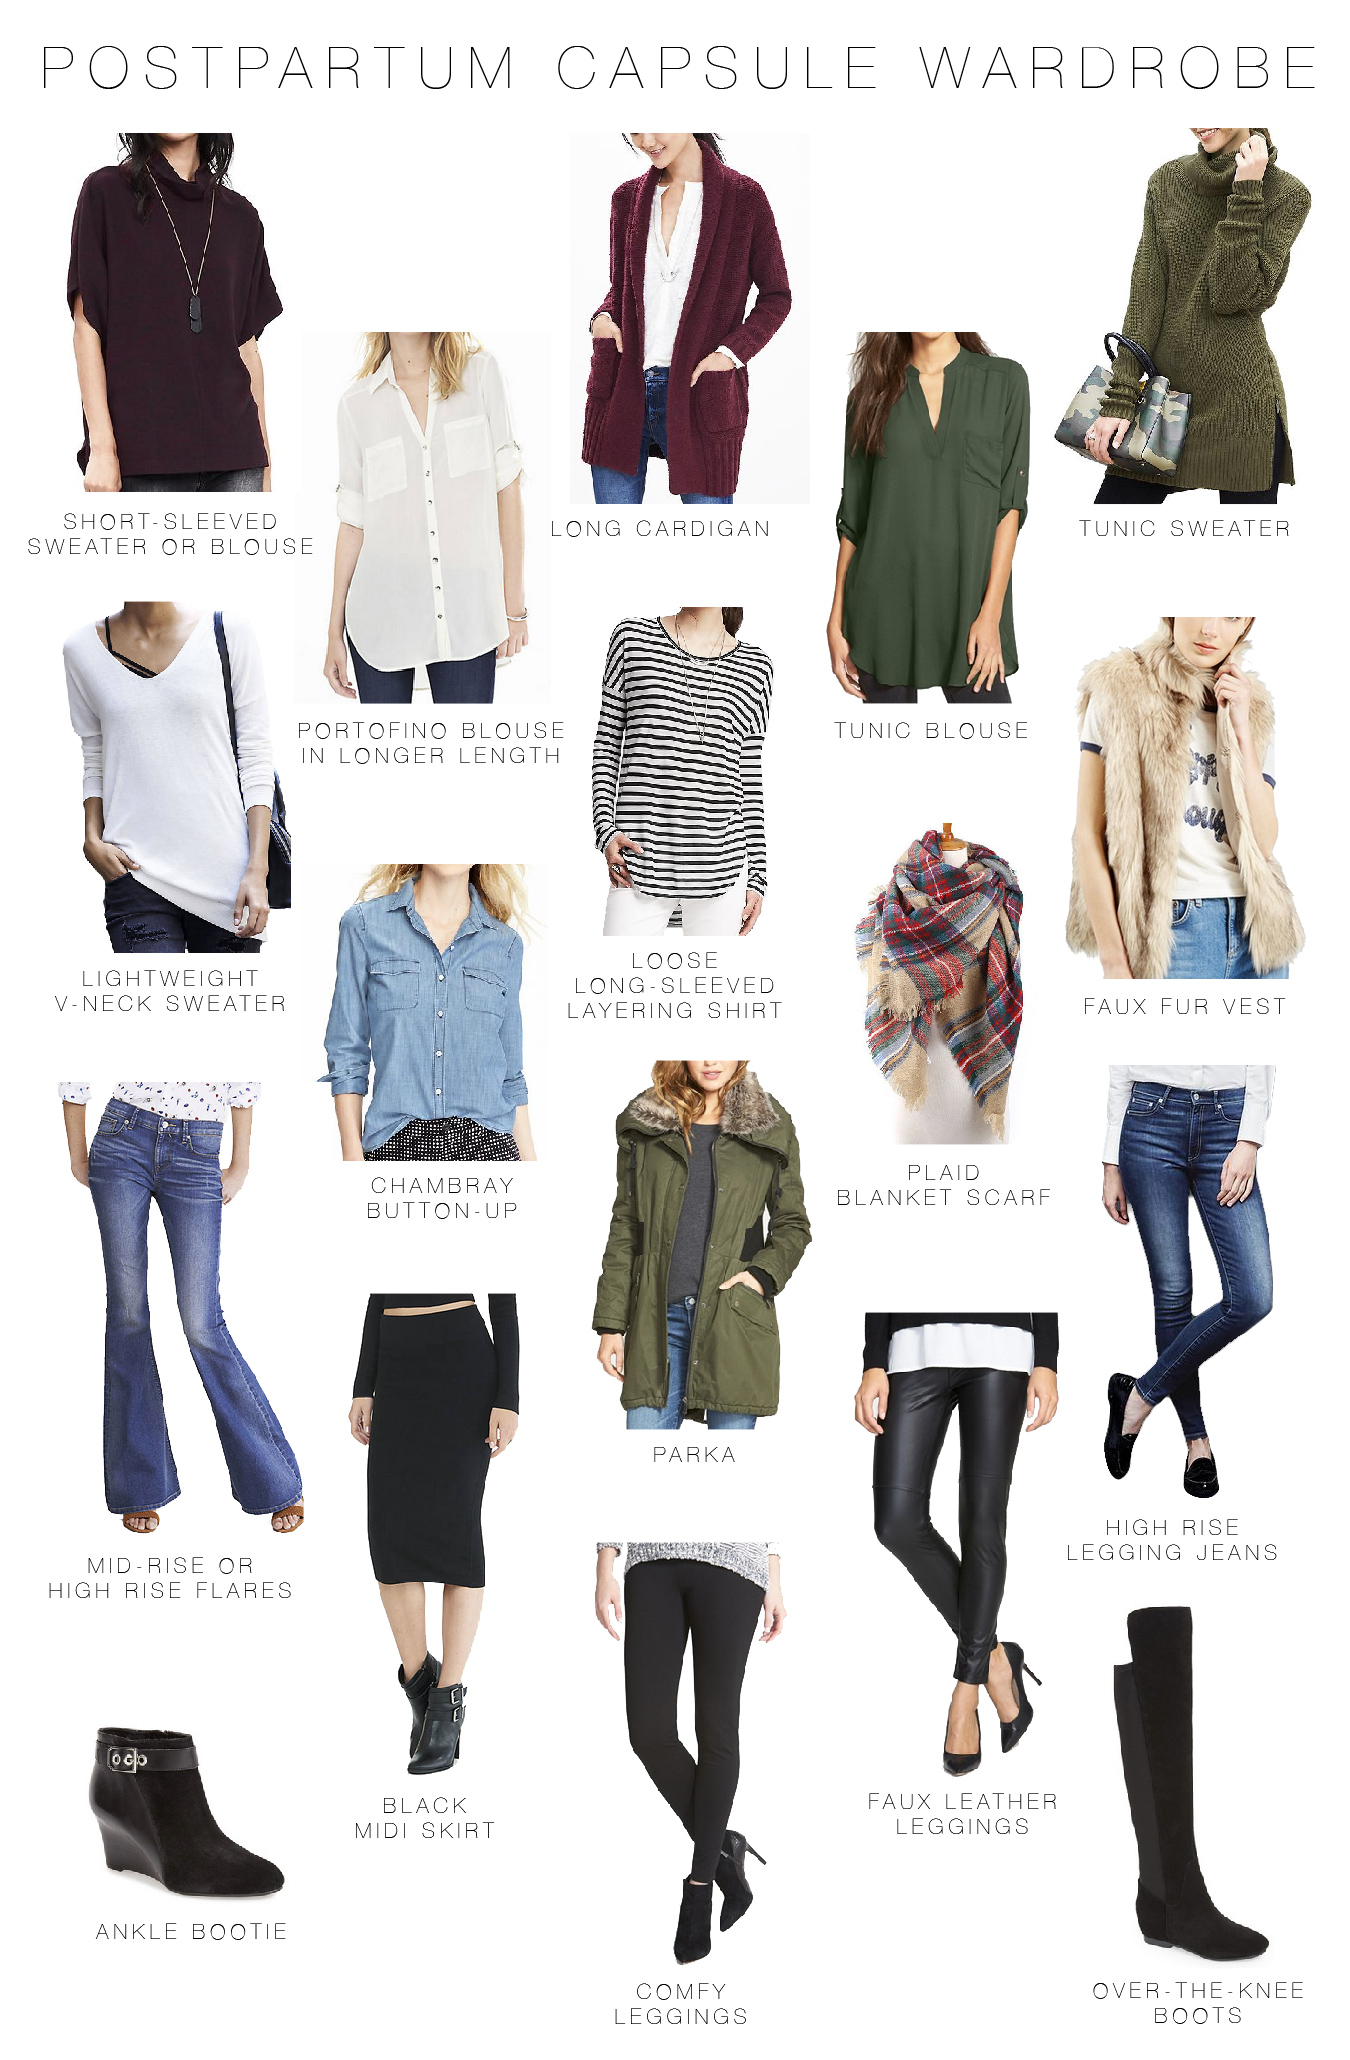 8a9d9c3b3995e Comfortable, Affordable Post-Partum Capsule Wardrobe